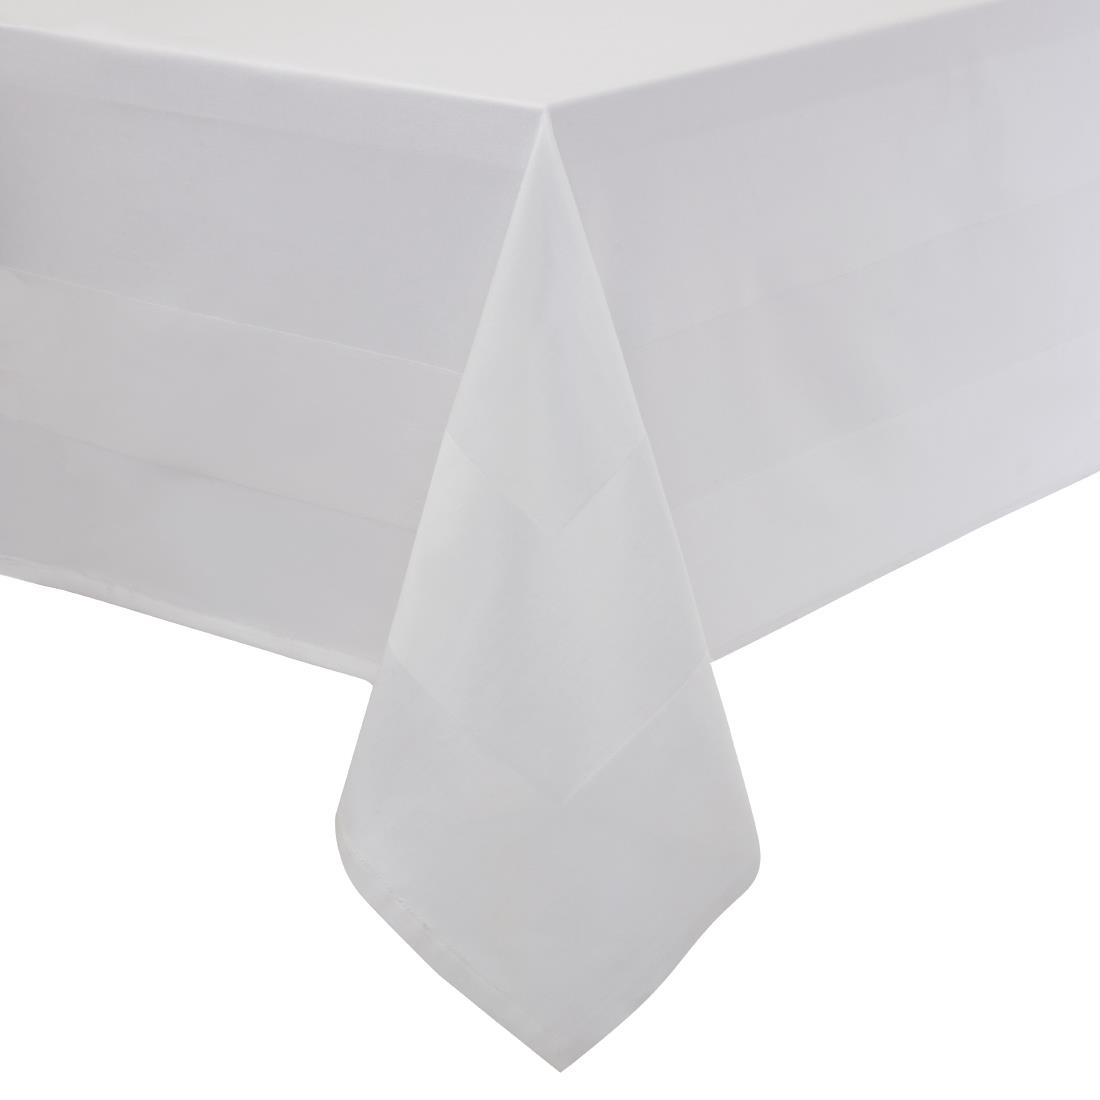 Image of Mitre Luxury Satin Band Tablecloth 910 x 910mm